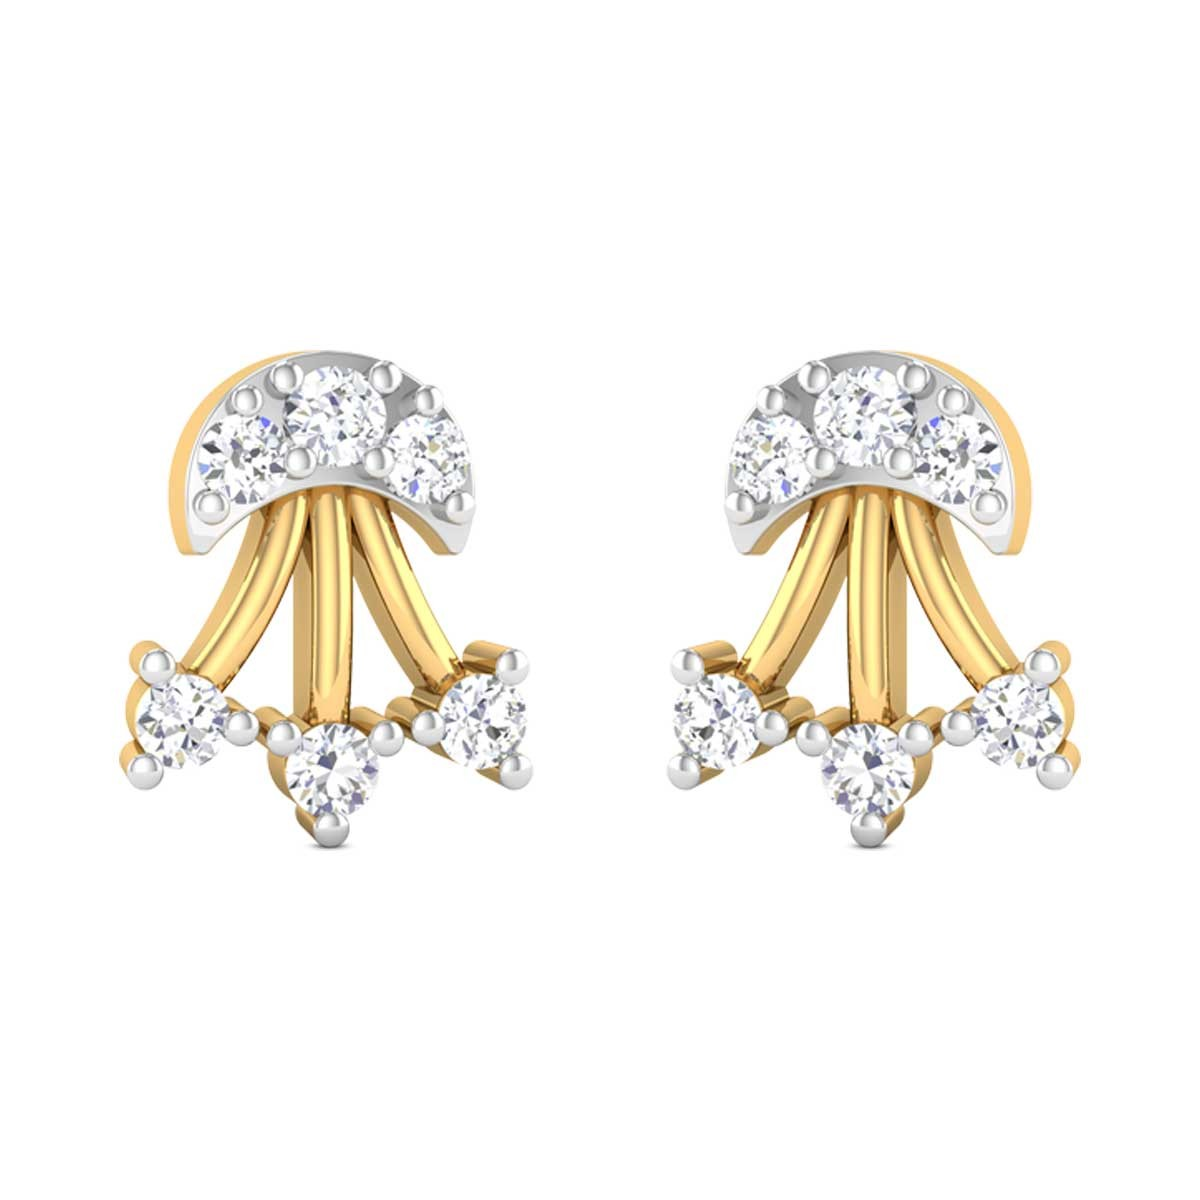 Kashira Diamond Earrings